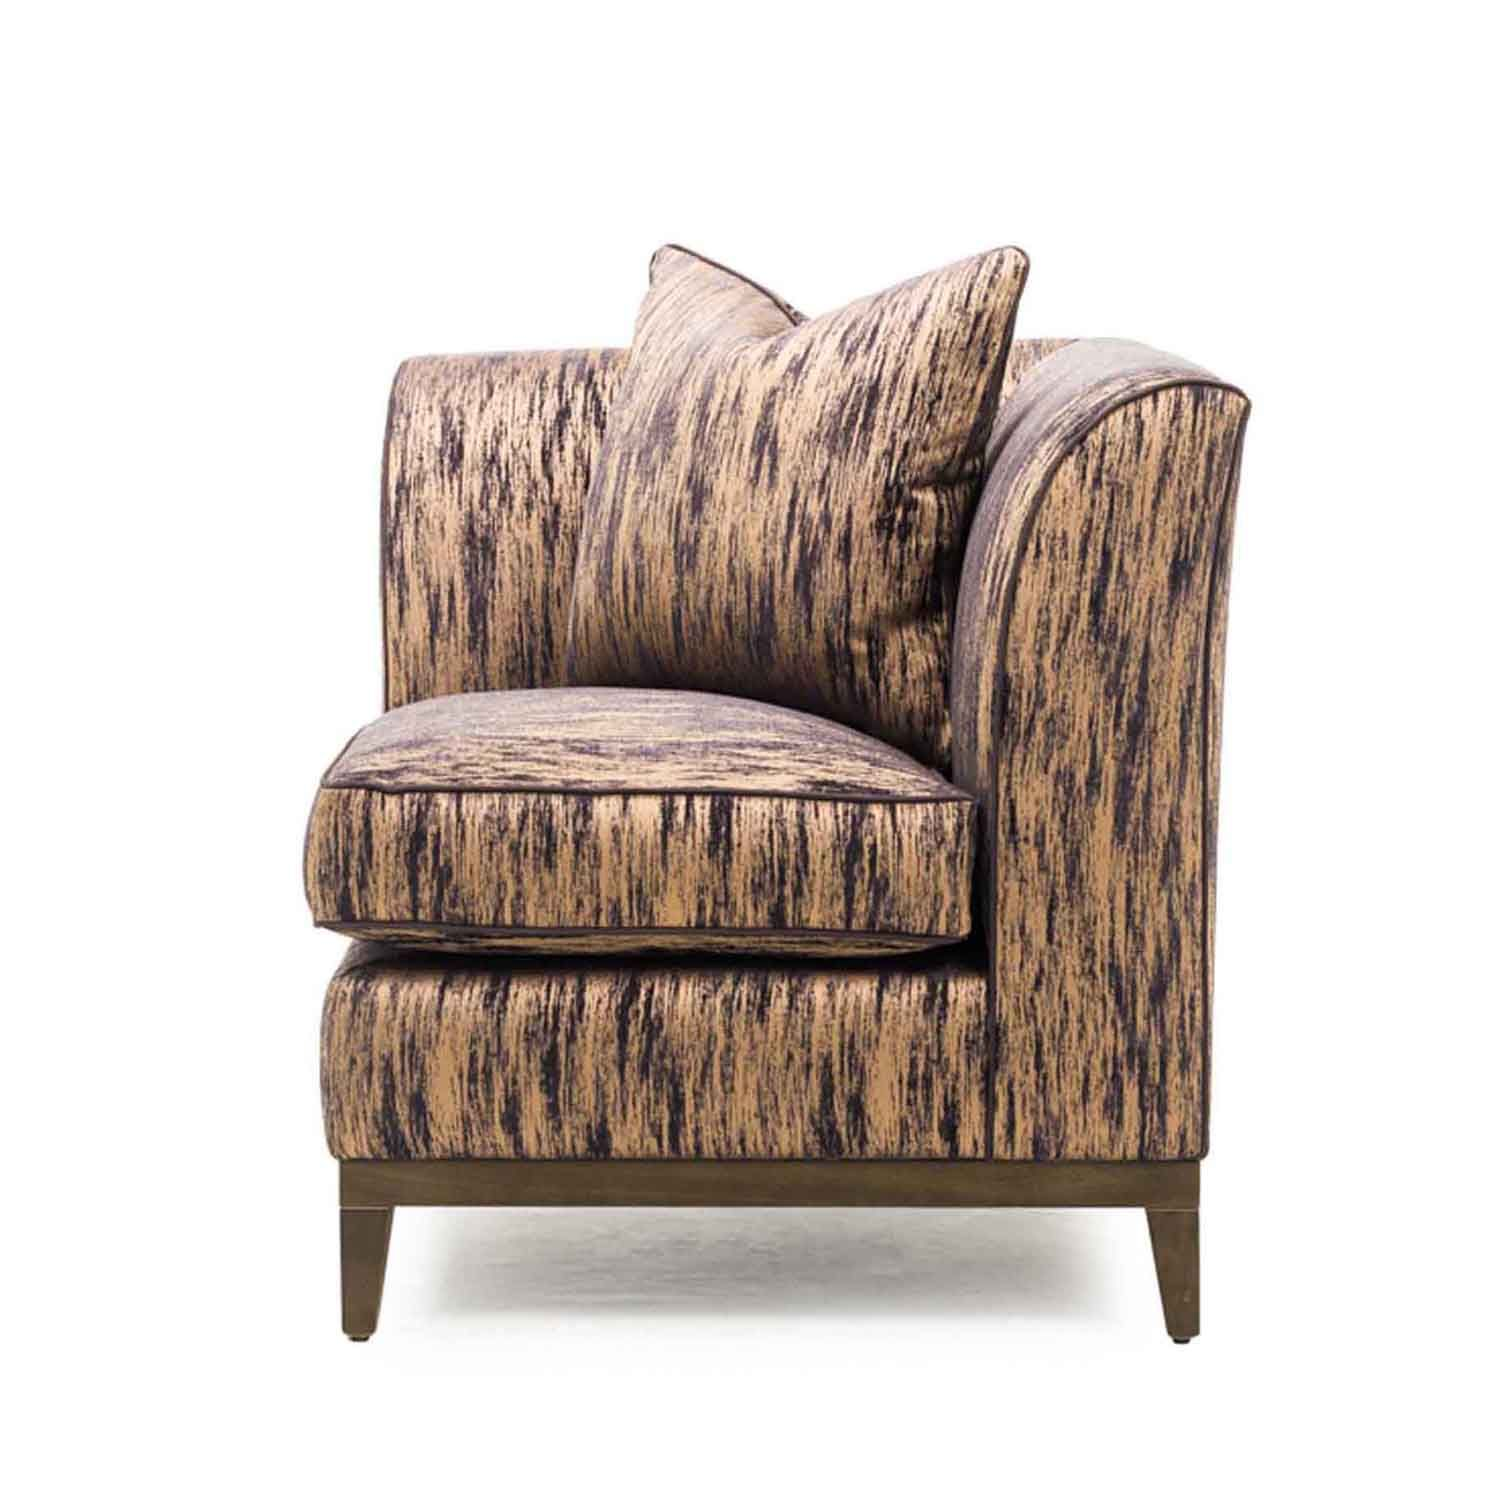 A unique piece can be used as a luxurious corner chair or as a